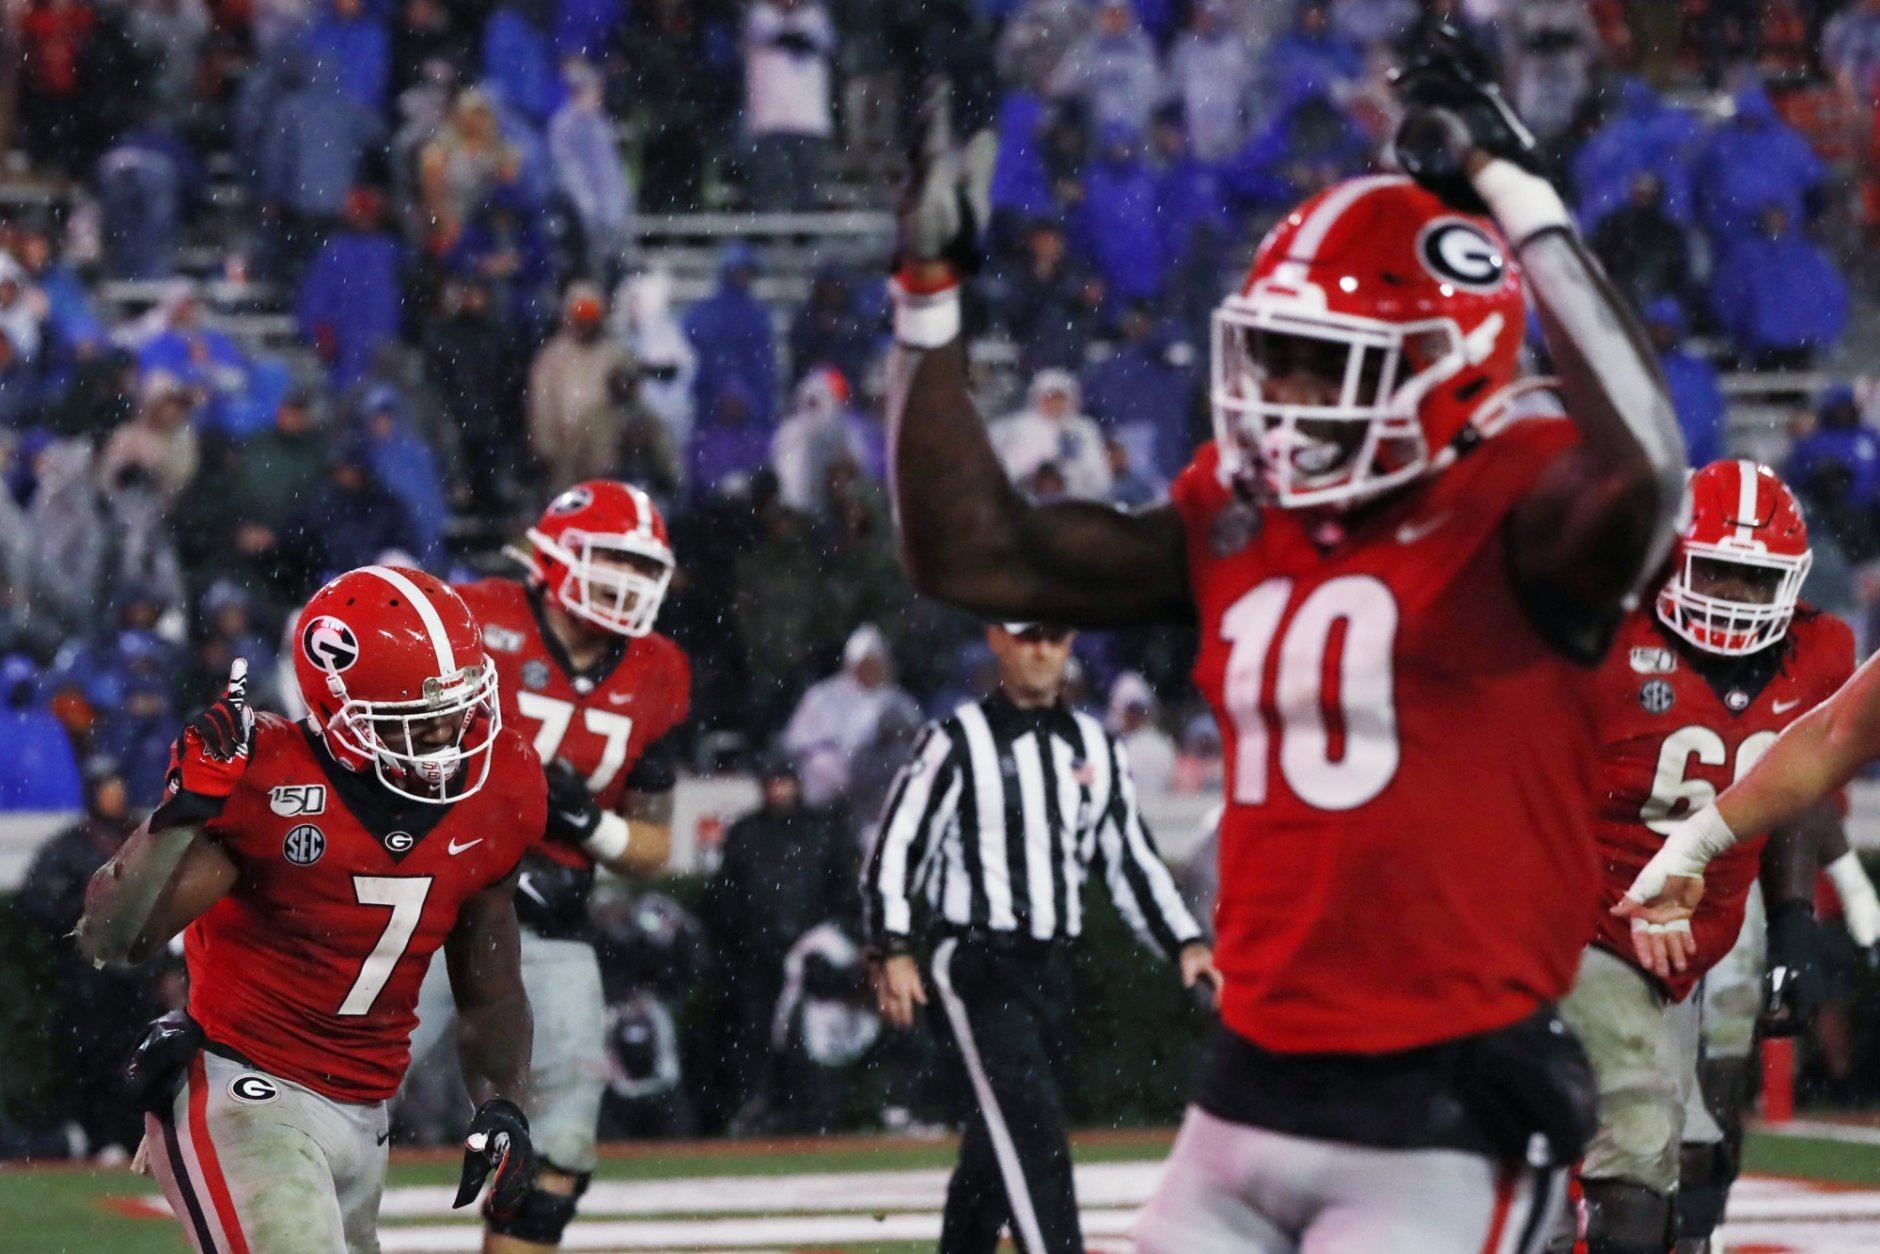 <p><strong>No. 6 Georgia (7-1):</strong> Win out, win SEC title</p> <p>Everything is right in front of Georgia to make the playoff. Blessed with a schedule that avoided both Alabama and LSU in the regular season, even with the slip-up against South Carolina, the Bulldogs have a clear path in the SEC East. They'll have one more shot at a potential Top 10 win at Auburn in two weeks, potentially putting them on a path to the conference championship. Knock off the SEC West champ, and they're in.</p>